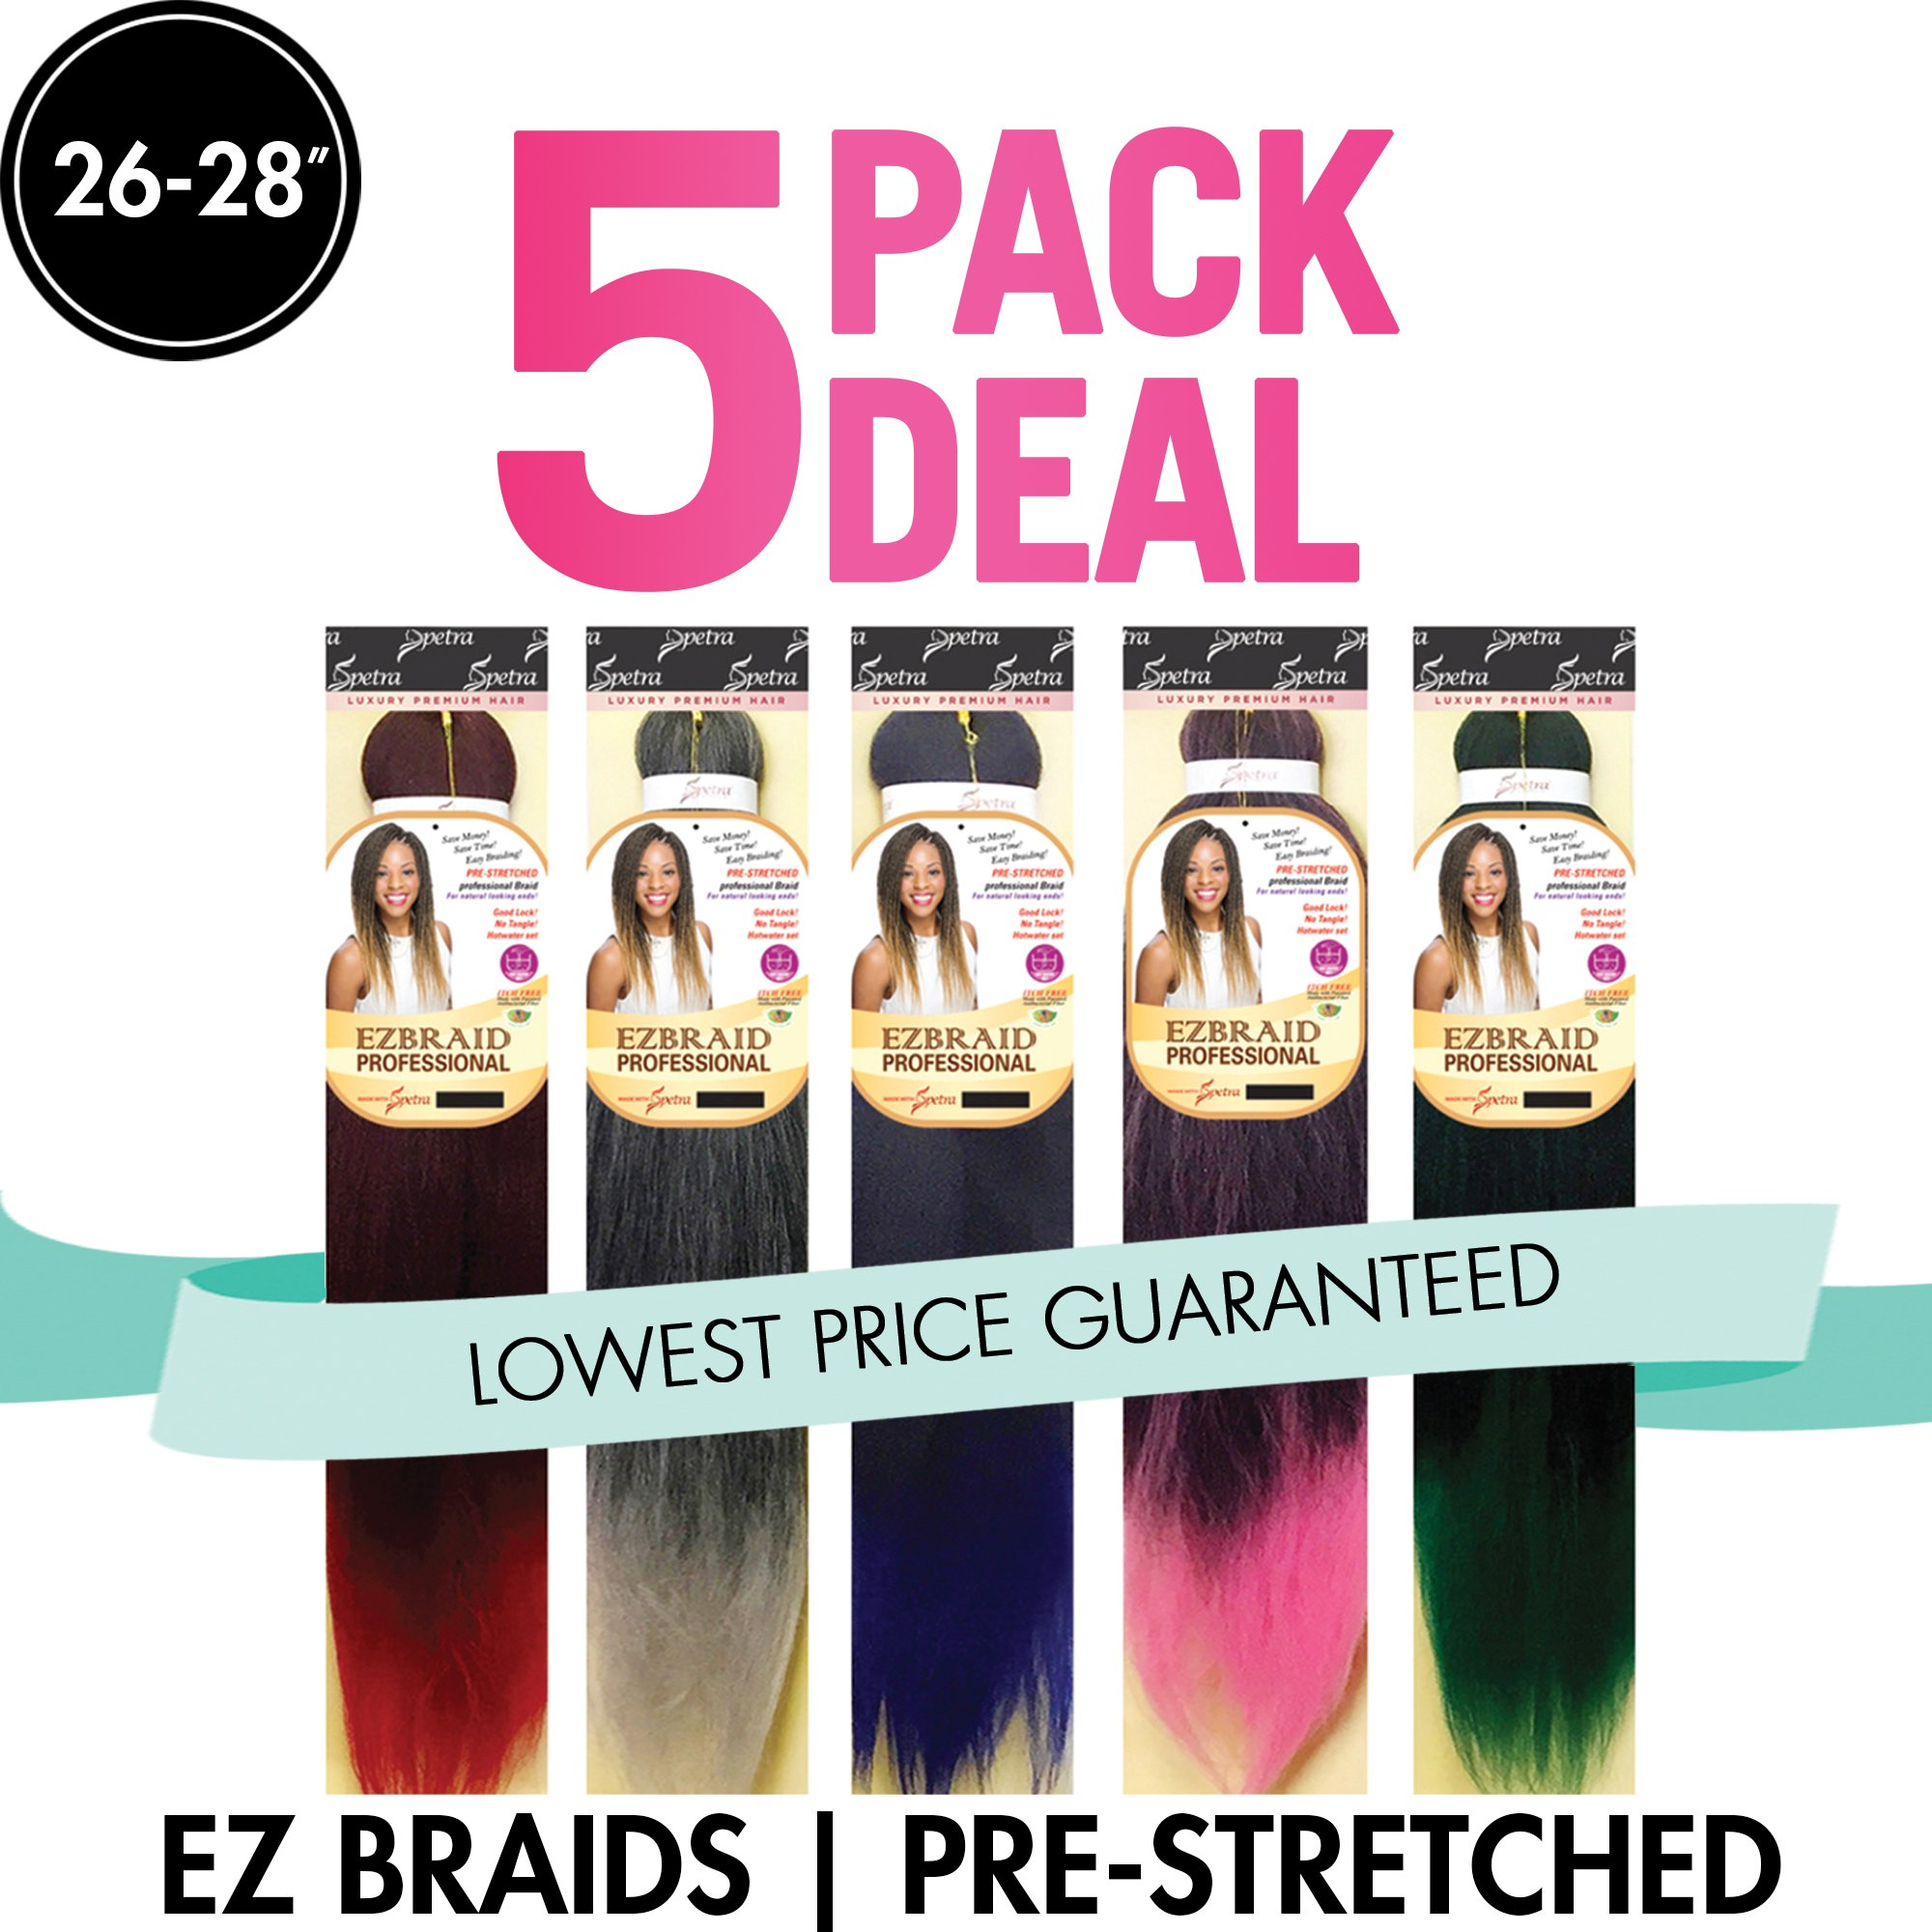 Spetra Innocence EZ Braid Professional (Pre-Stretched Braid) 26'' 5 Pack (Color: 99J) by Innocence (Image #1)